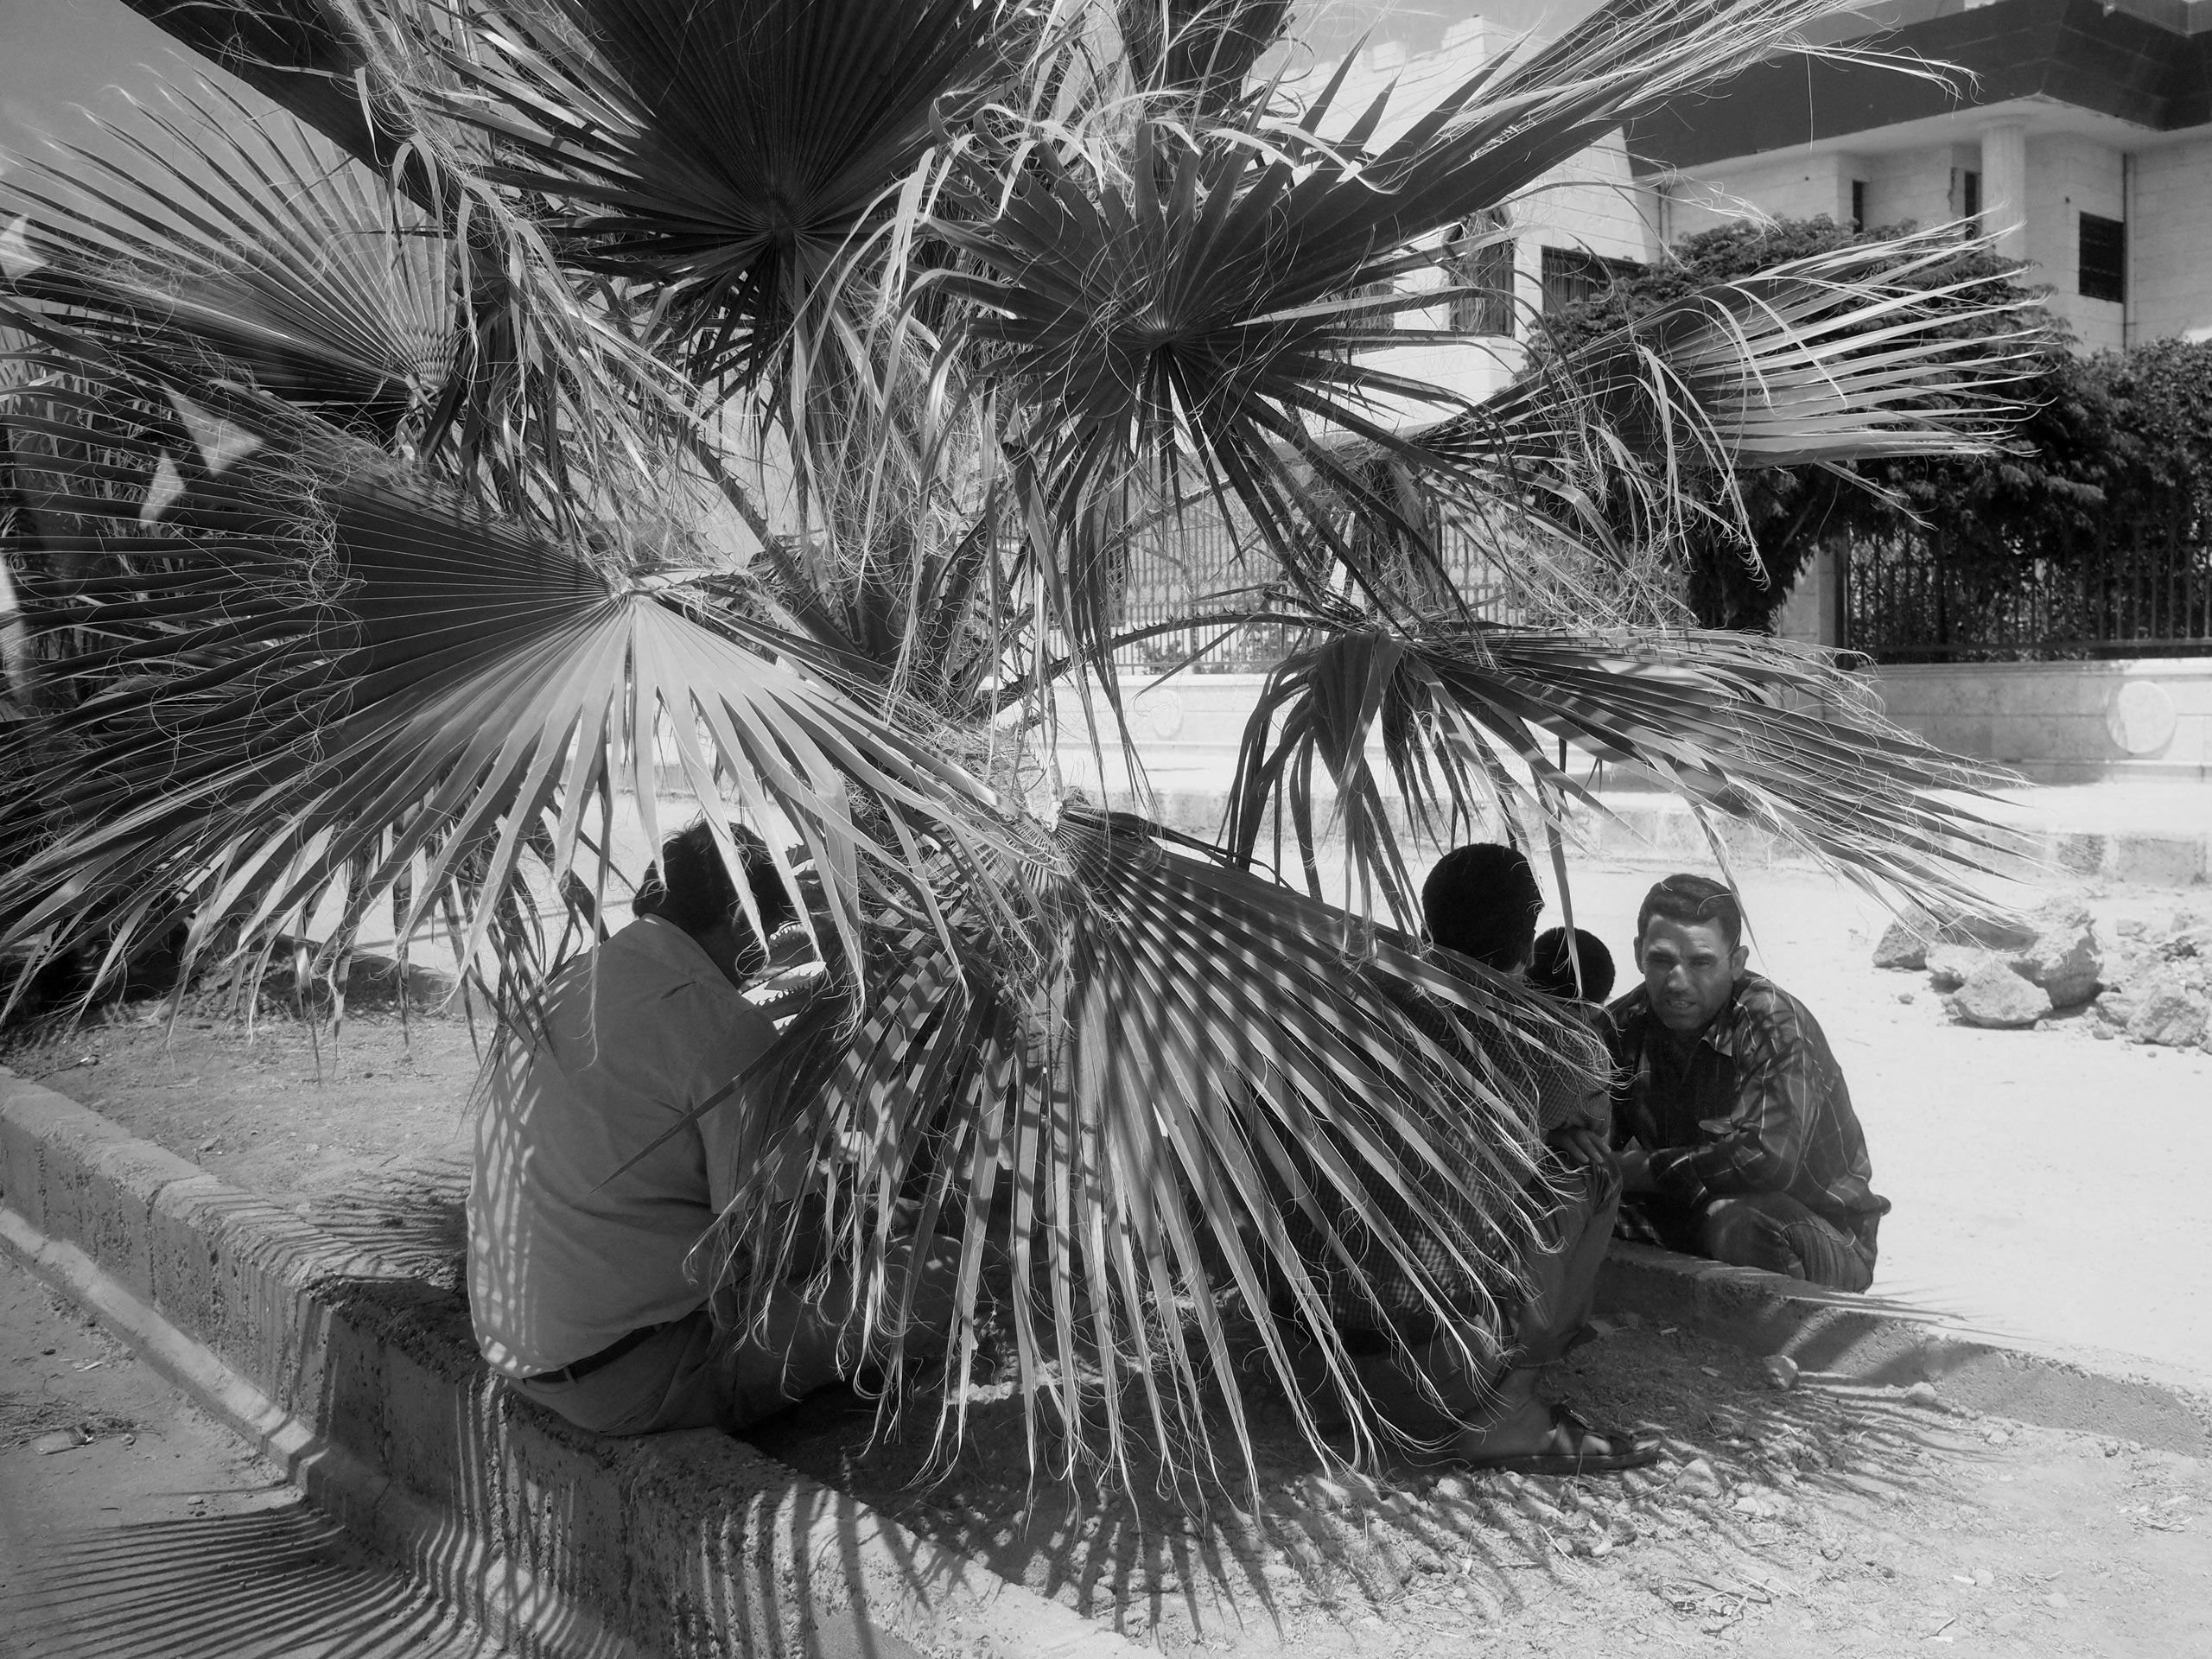 Men seek shade under a palm tree in the former Islamic State stronghold of Tal Abyad, re-captured by the Kurdish YPG militia in June of this year. Tal Abyad, Syria. Aug. 8, 2015.